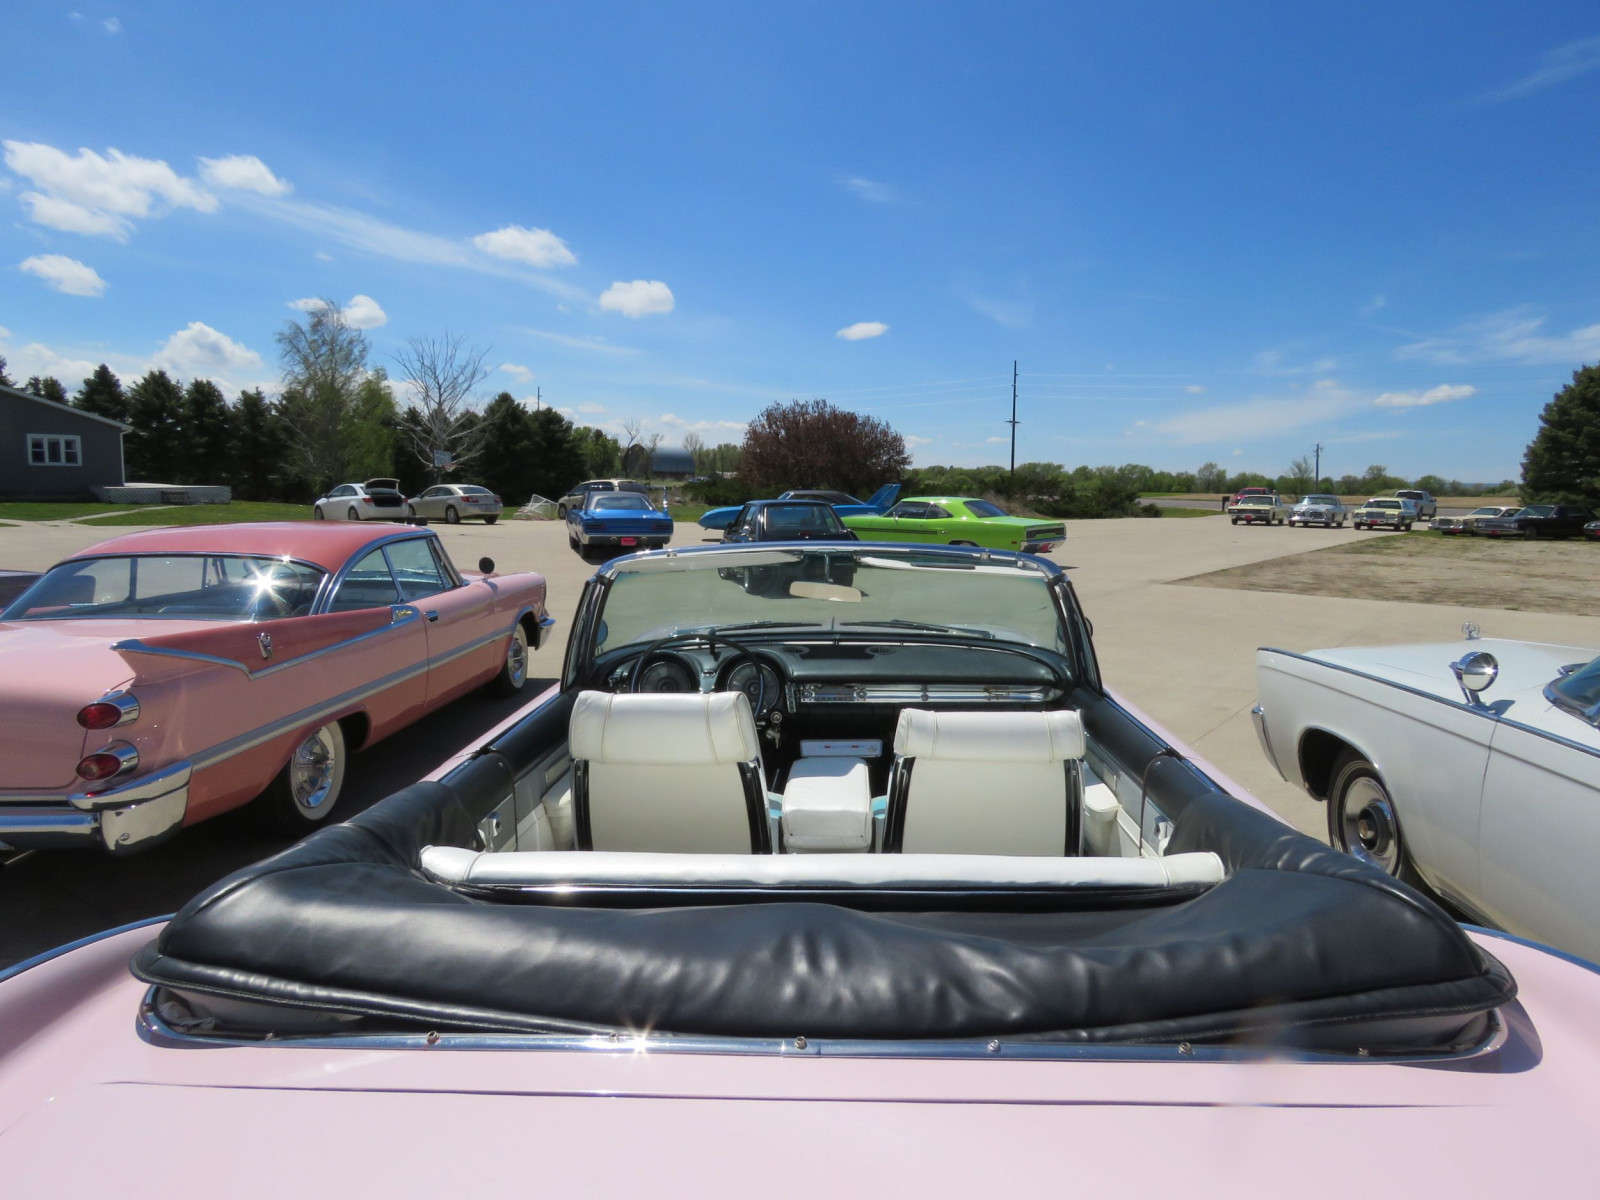 RARE 1960 Chrysler Imperial Crown Convertible - Image 9